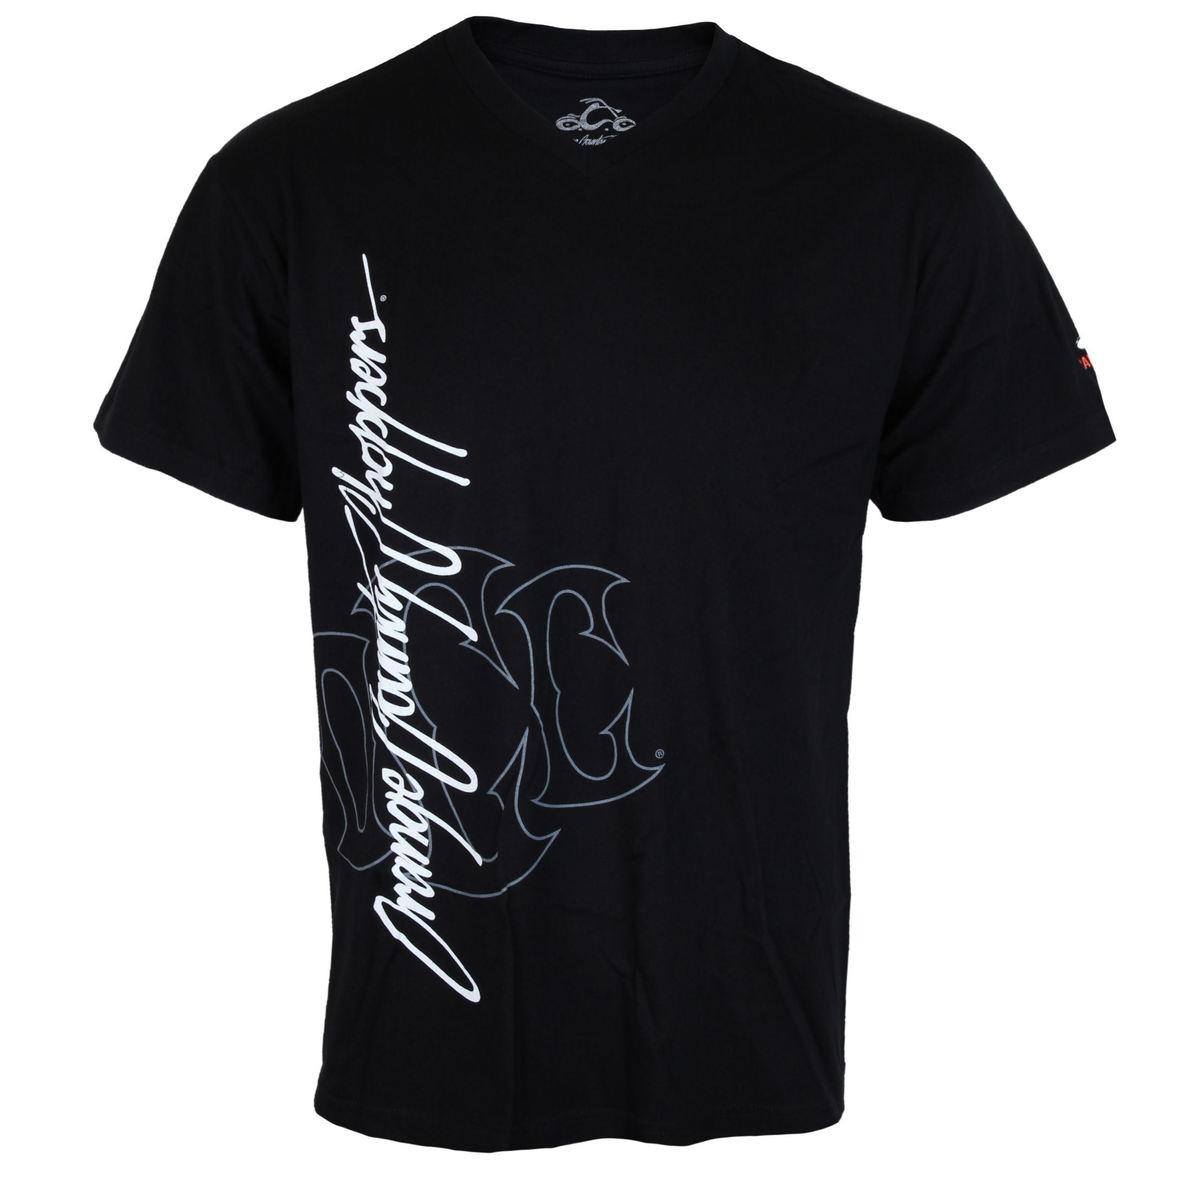 tričko pánské ORANGE COUNTY CHOPPERS - Script - Black - OCCTSV00102